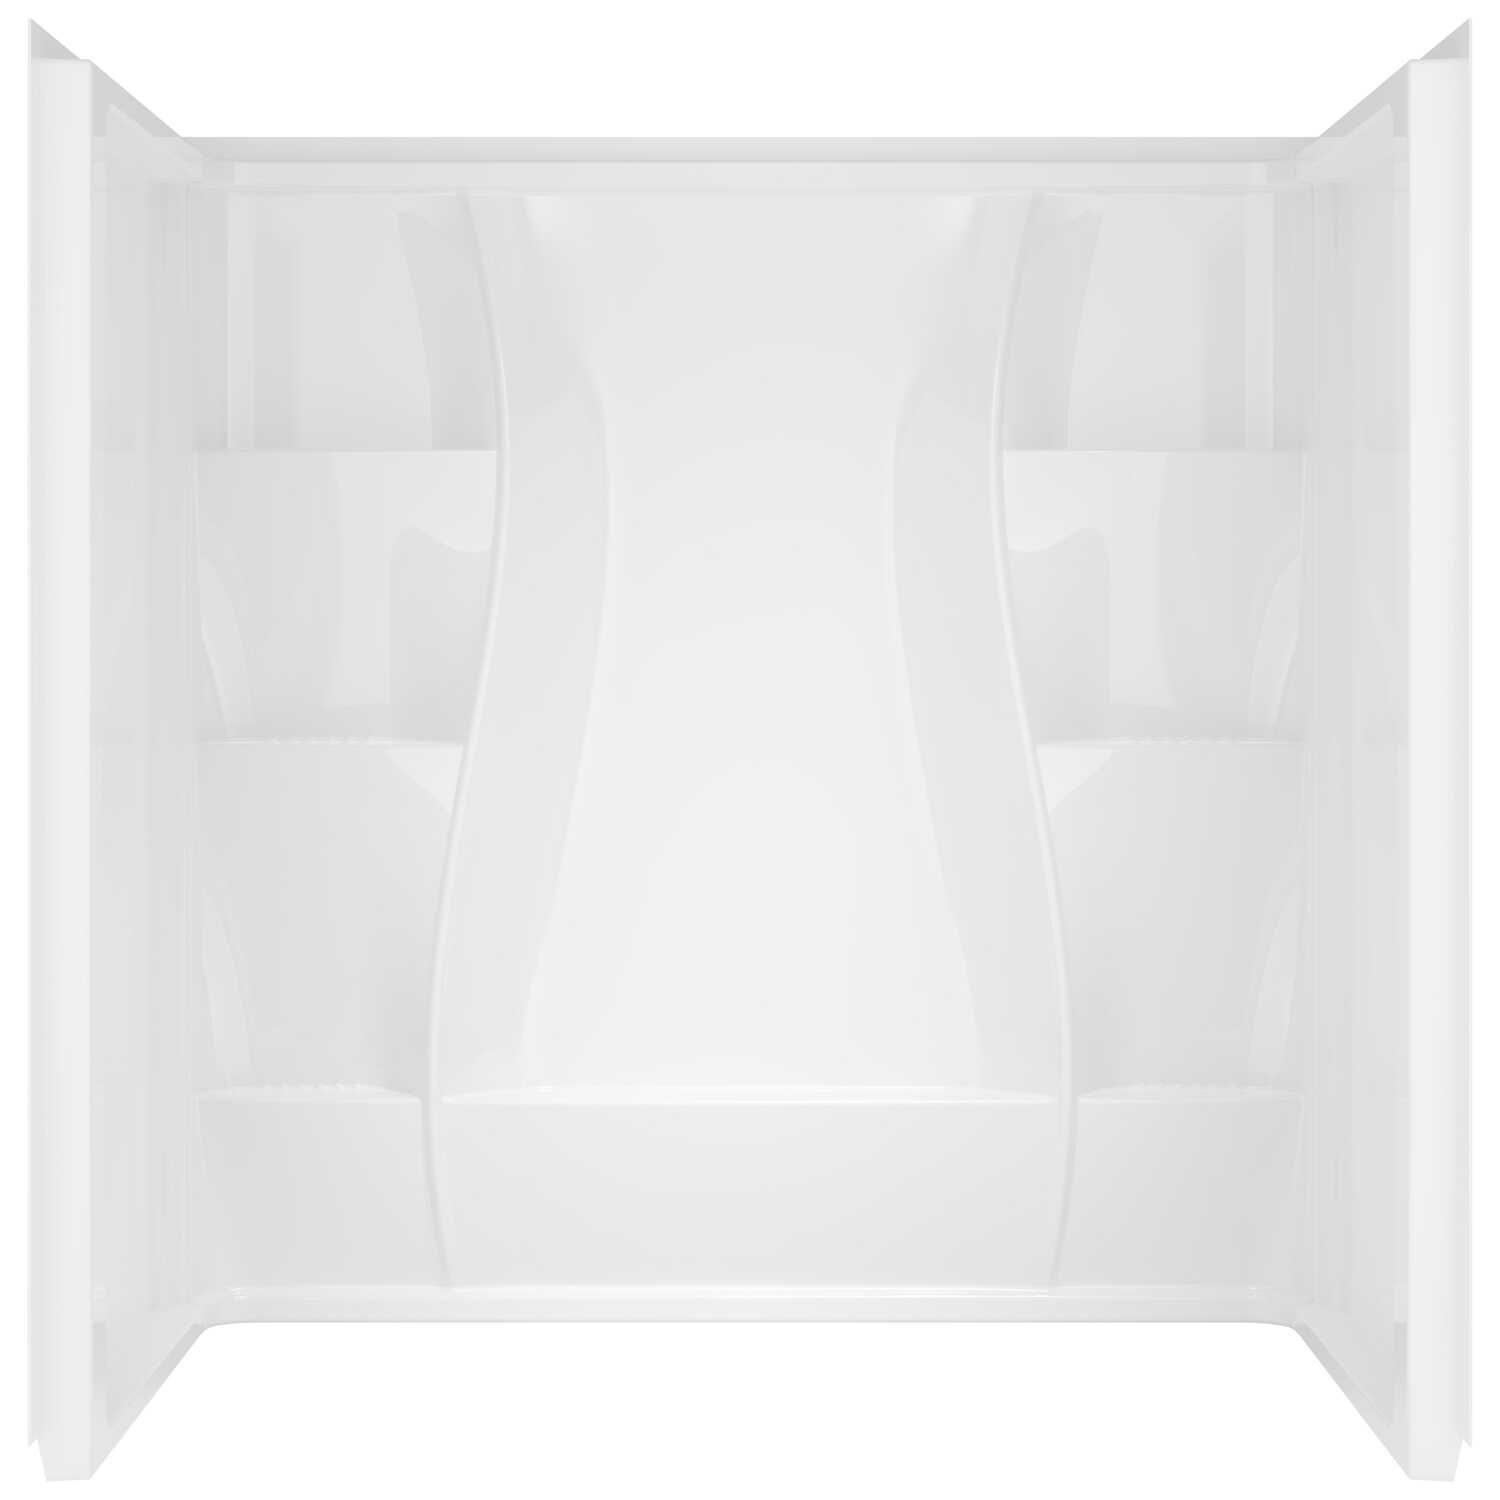 Delta Bathing System  74 in. H x 60 in. W x 32 in. L White  Three Piece  Reversible  Rectangle  Show